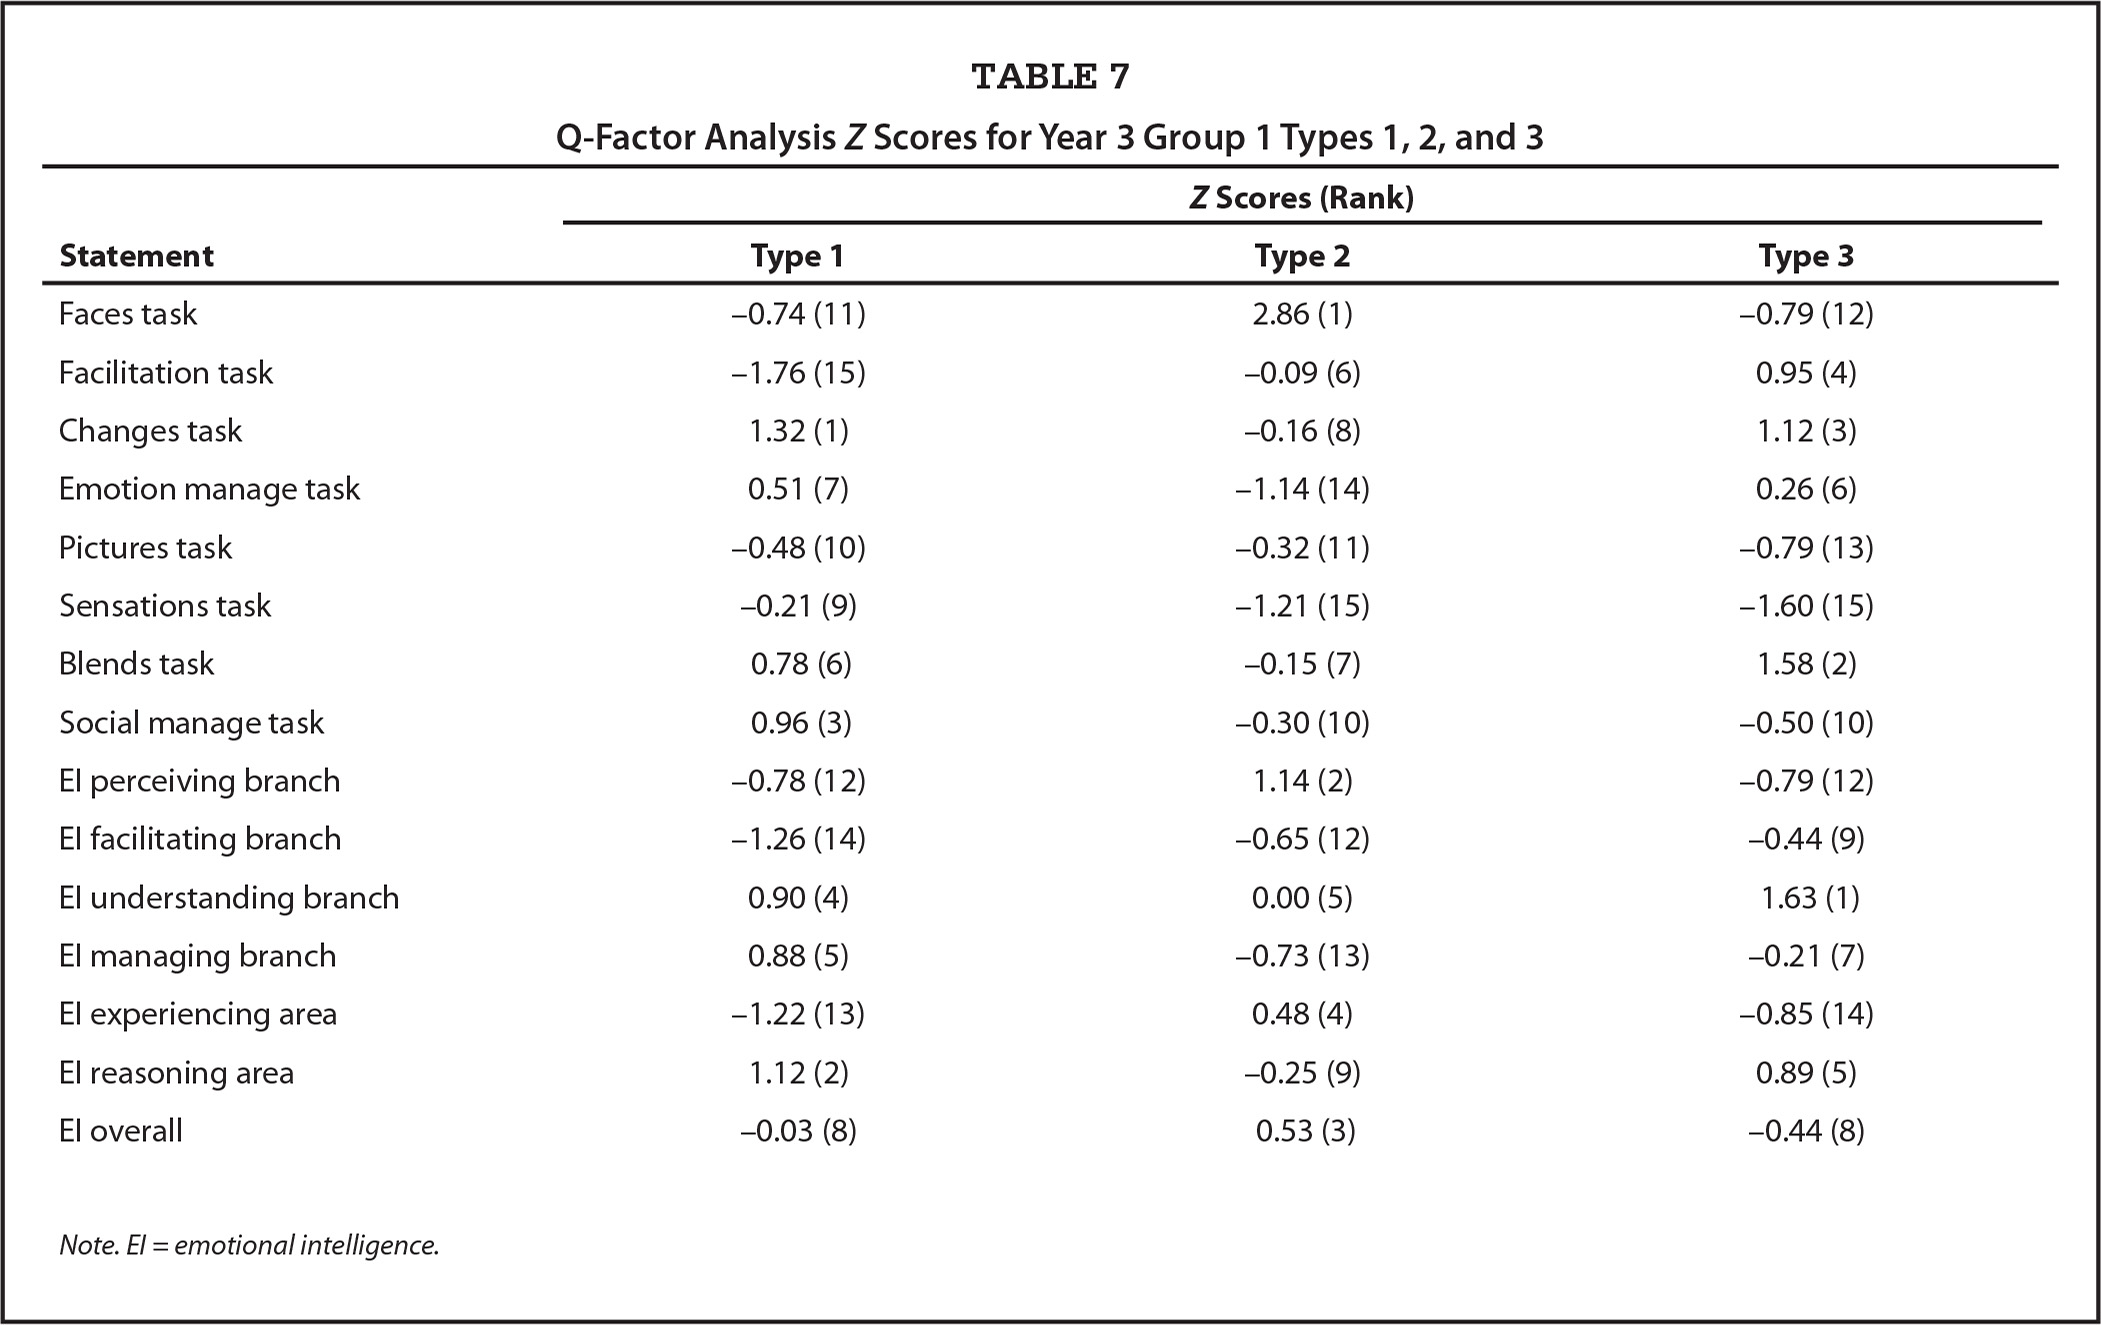 Q-Factor Analysis Z Scores for Year 3 Group 1 Types 1, 2, and 3